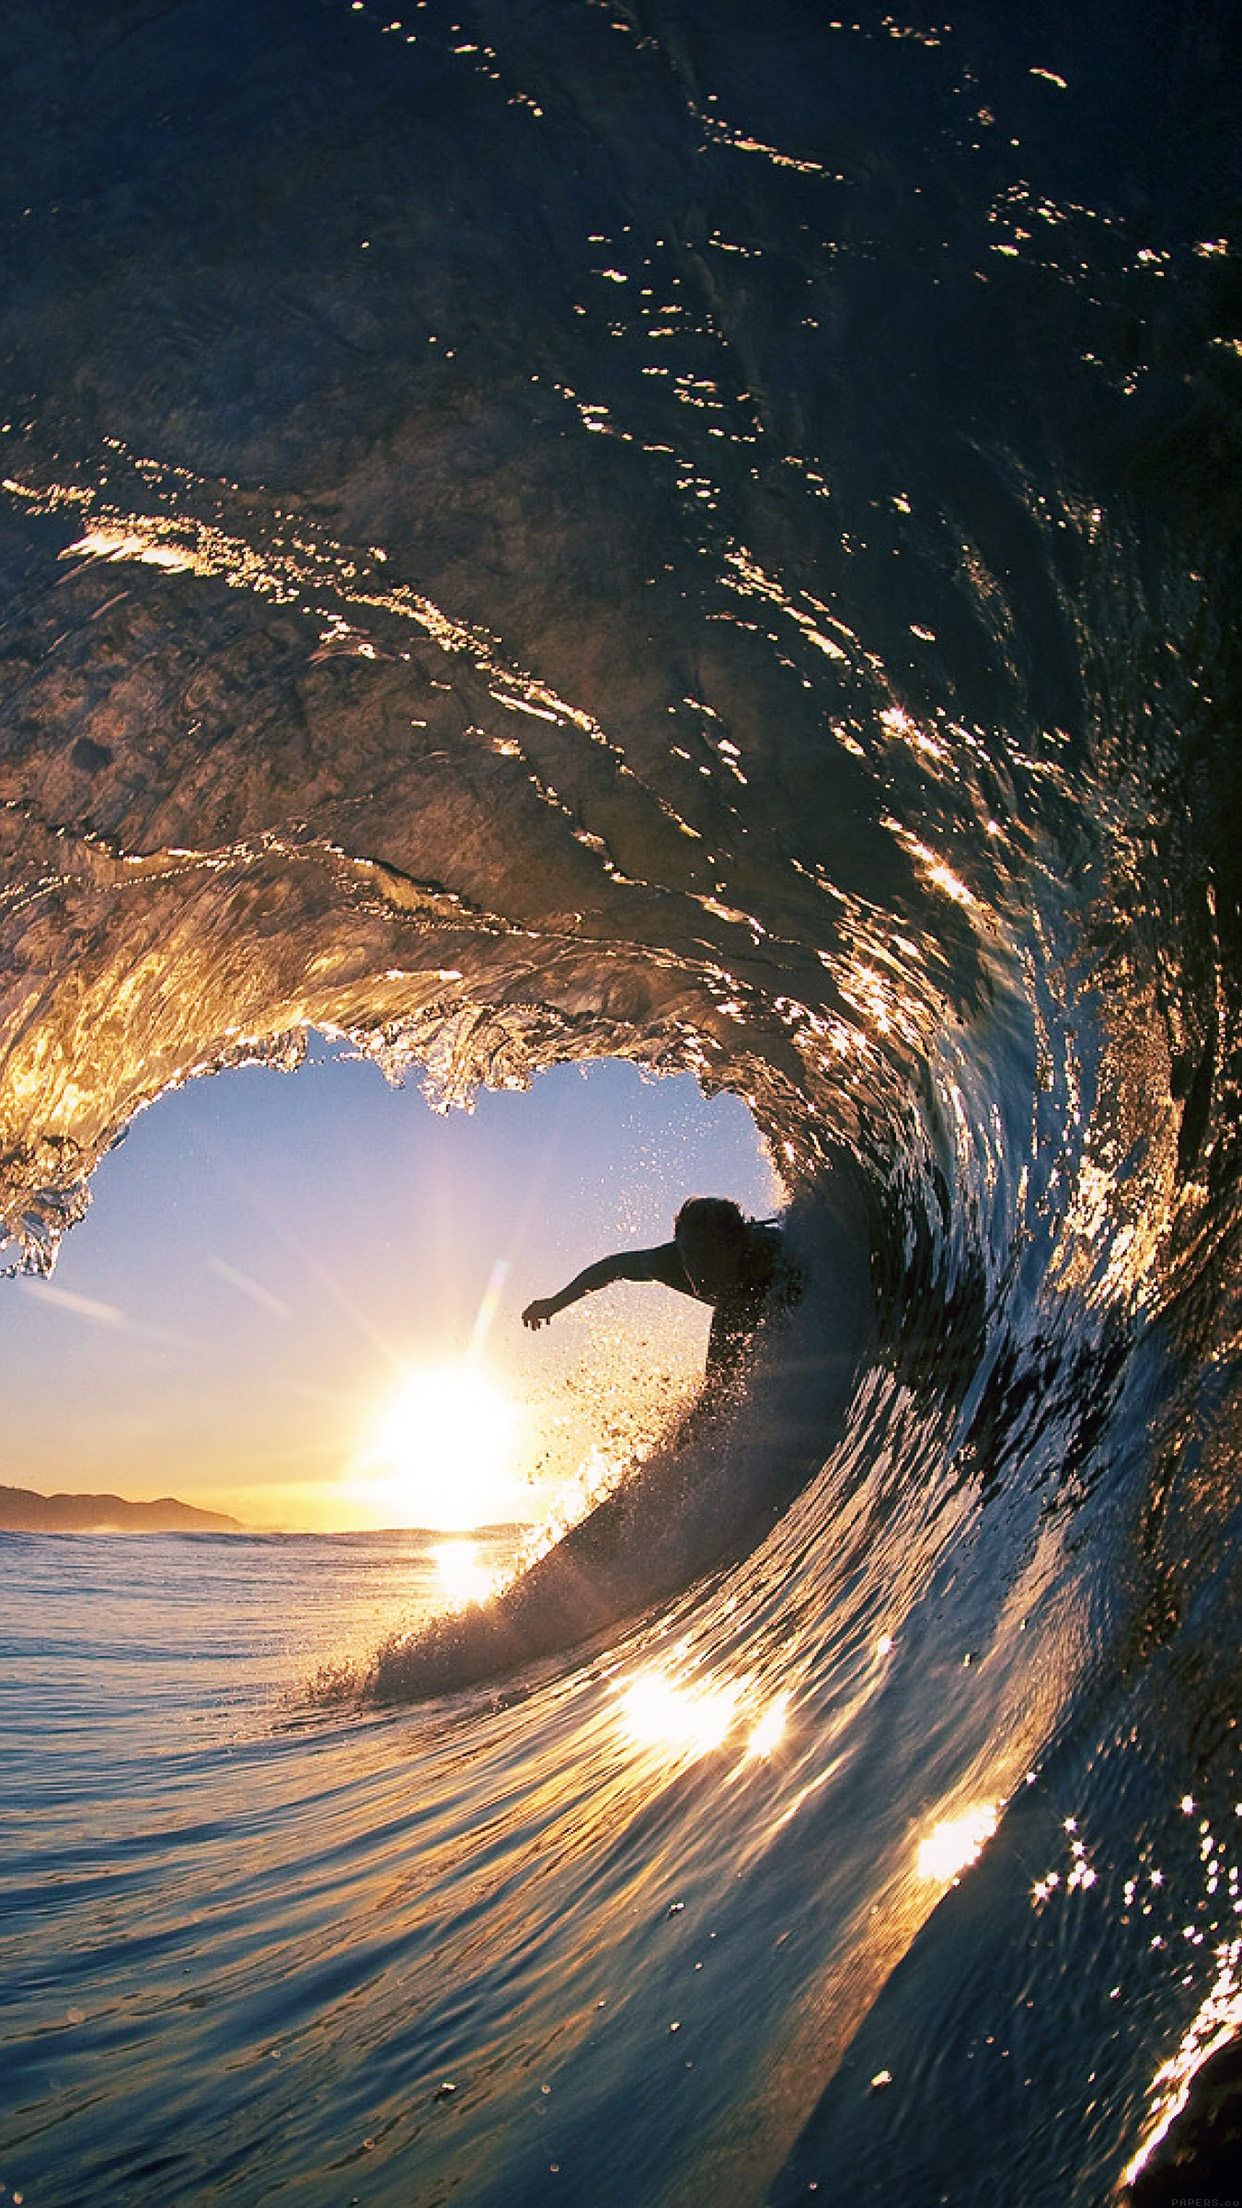 Iphone6papers Mq06 Surf Wave Sea Nature Sunshine